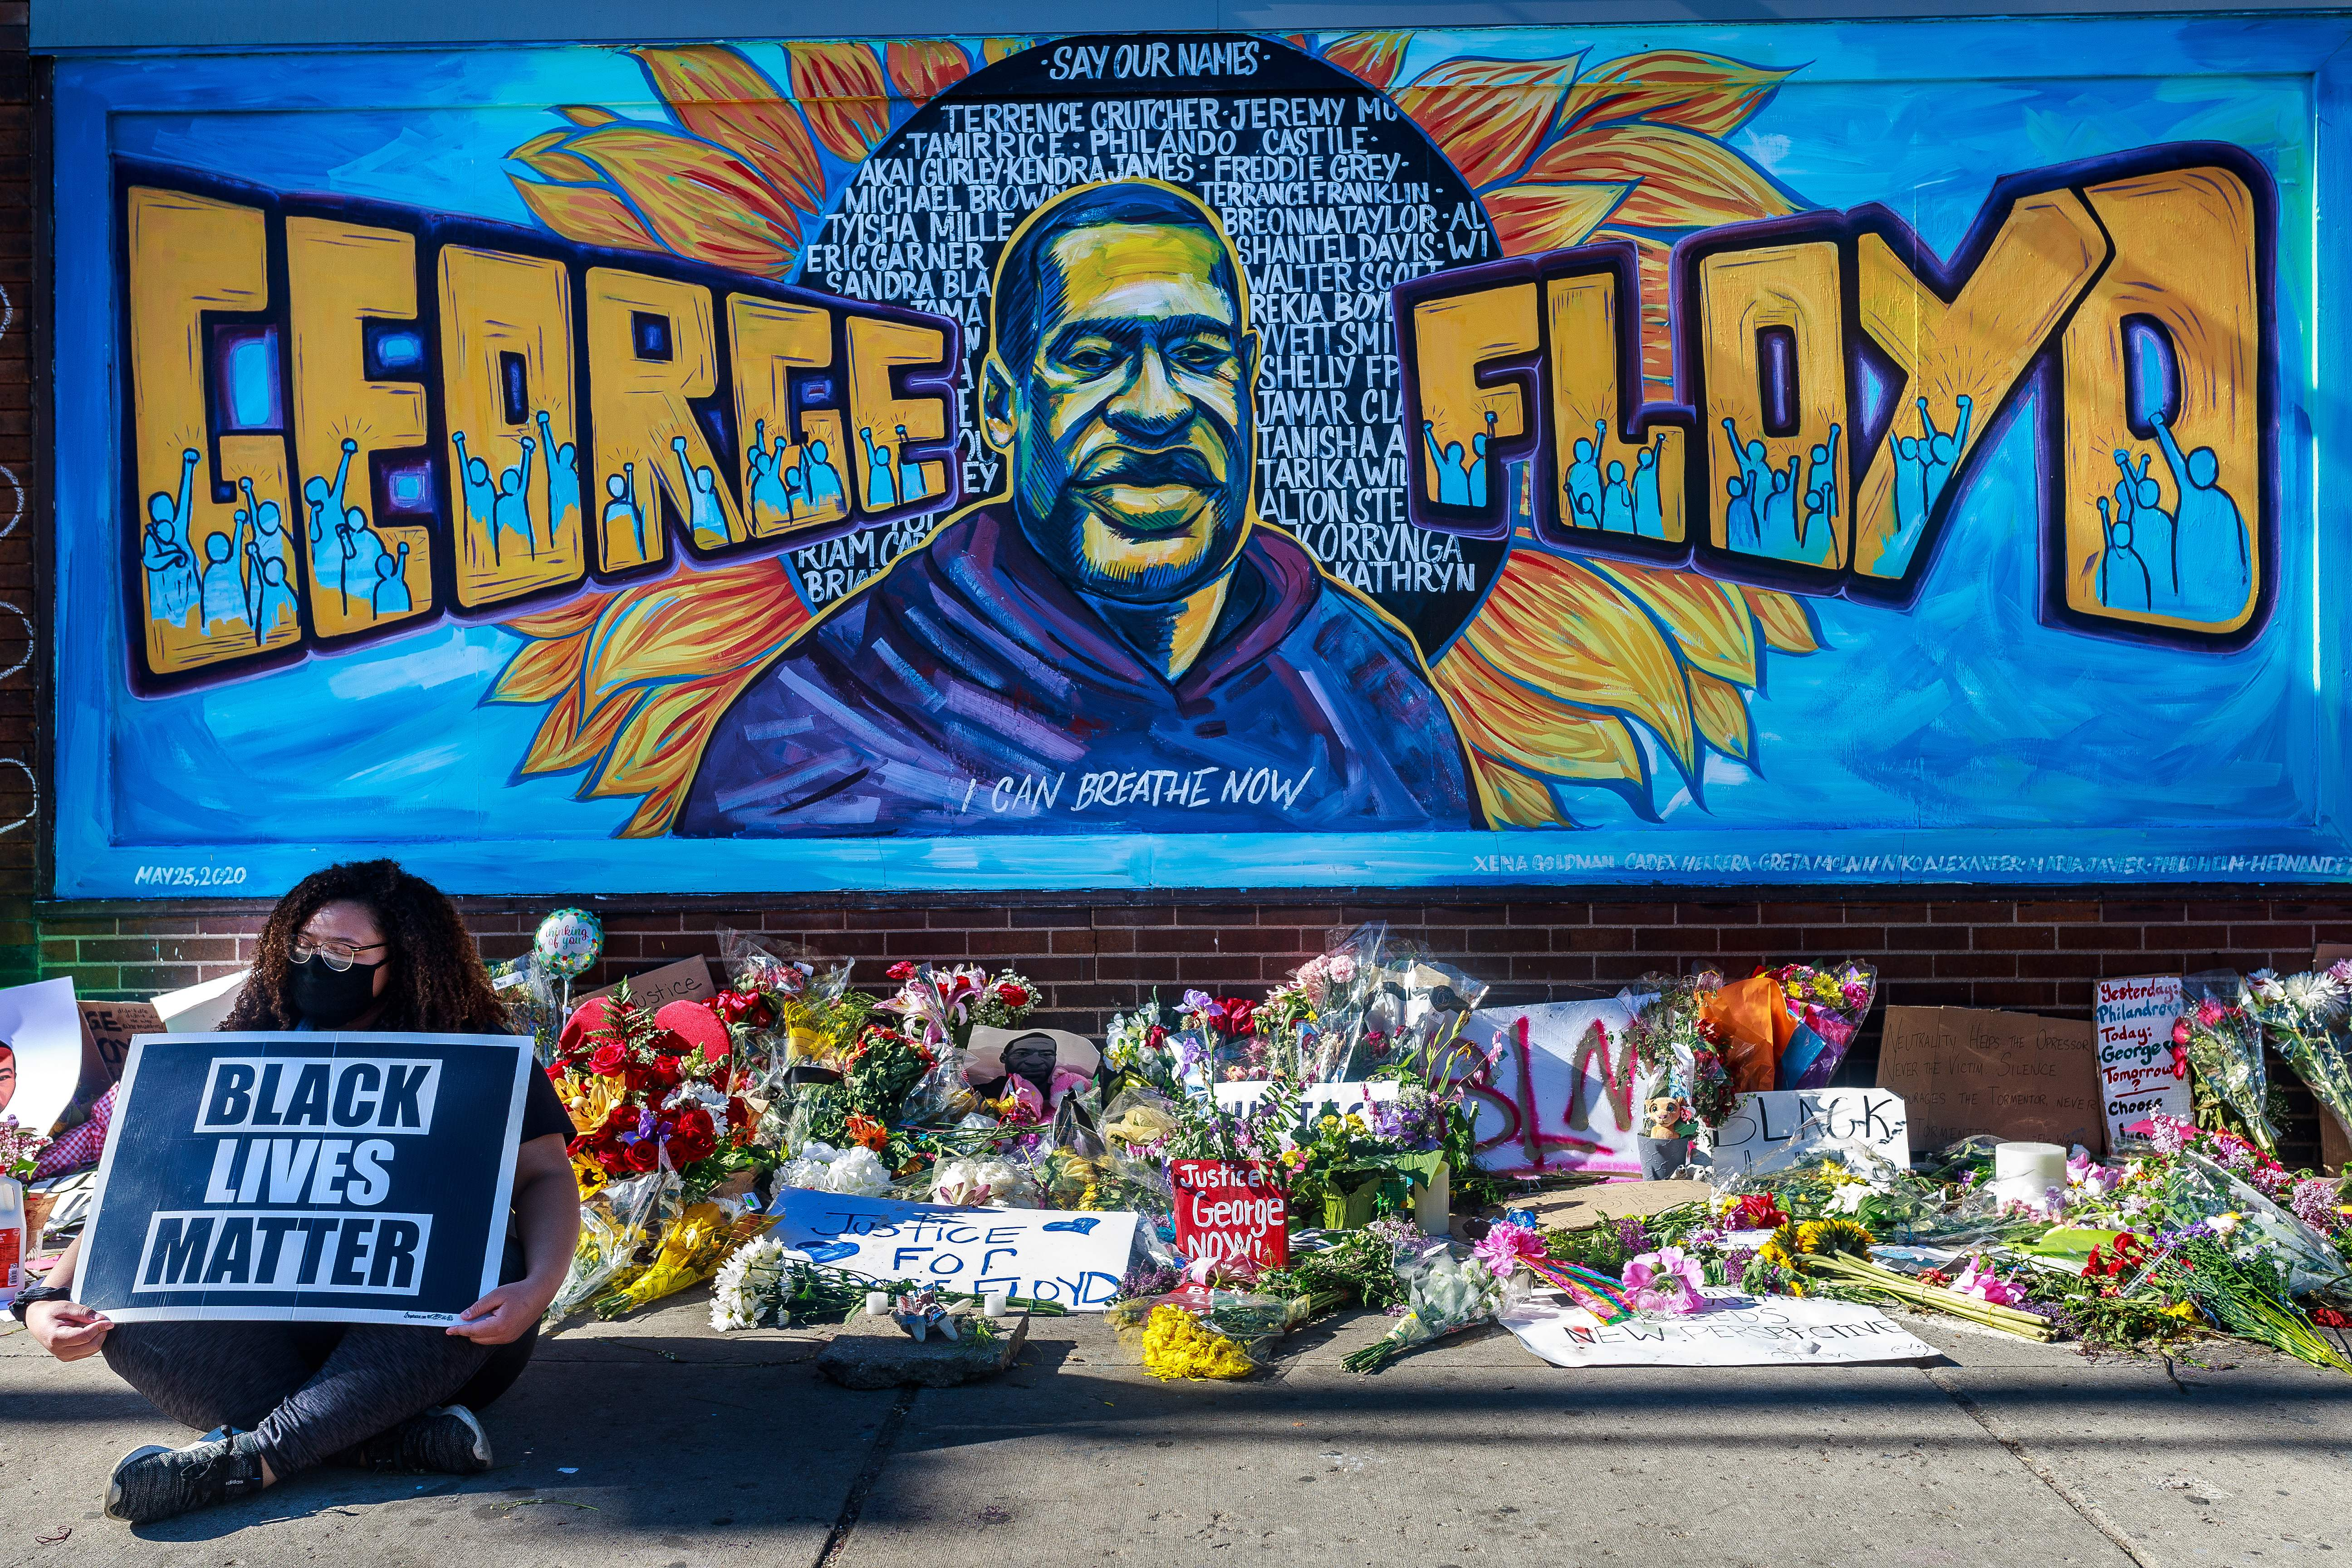 Flowers, signs and balloons are left near a makeshift memorial to George Floyd near the spot where he died while in custody of the Minneapolis police, on May 29, 2020 in Minneapolis, Minnesota. - Demonstrations are being held across the US after George Floyd died in police custody on May 25. (Photo by Kerem Yucel / AFP) (Photo by KEREM YUCEL/AFP via Getty Images)